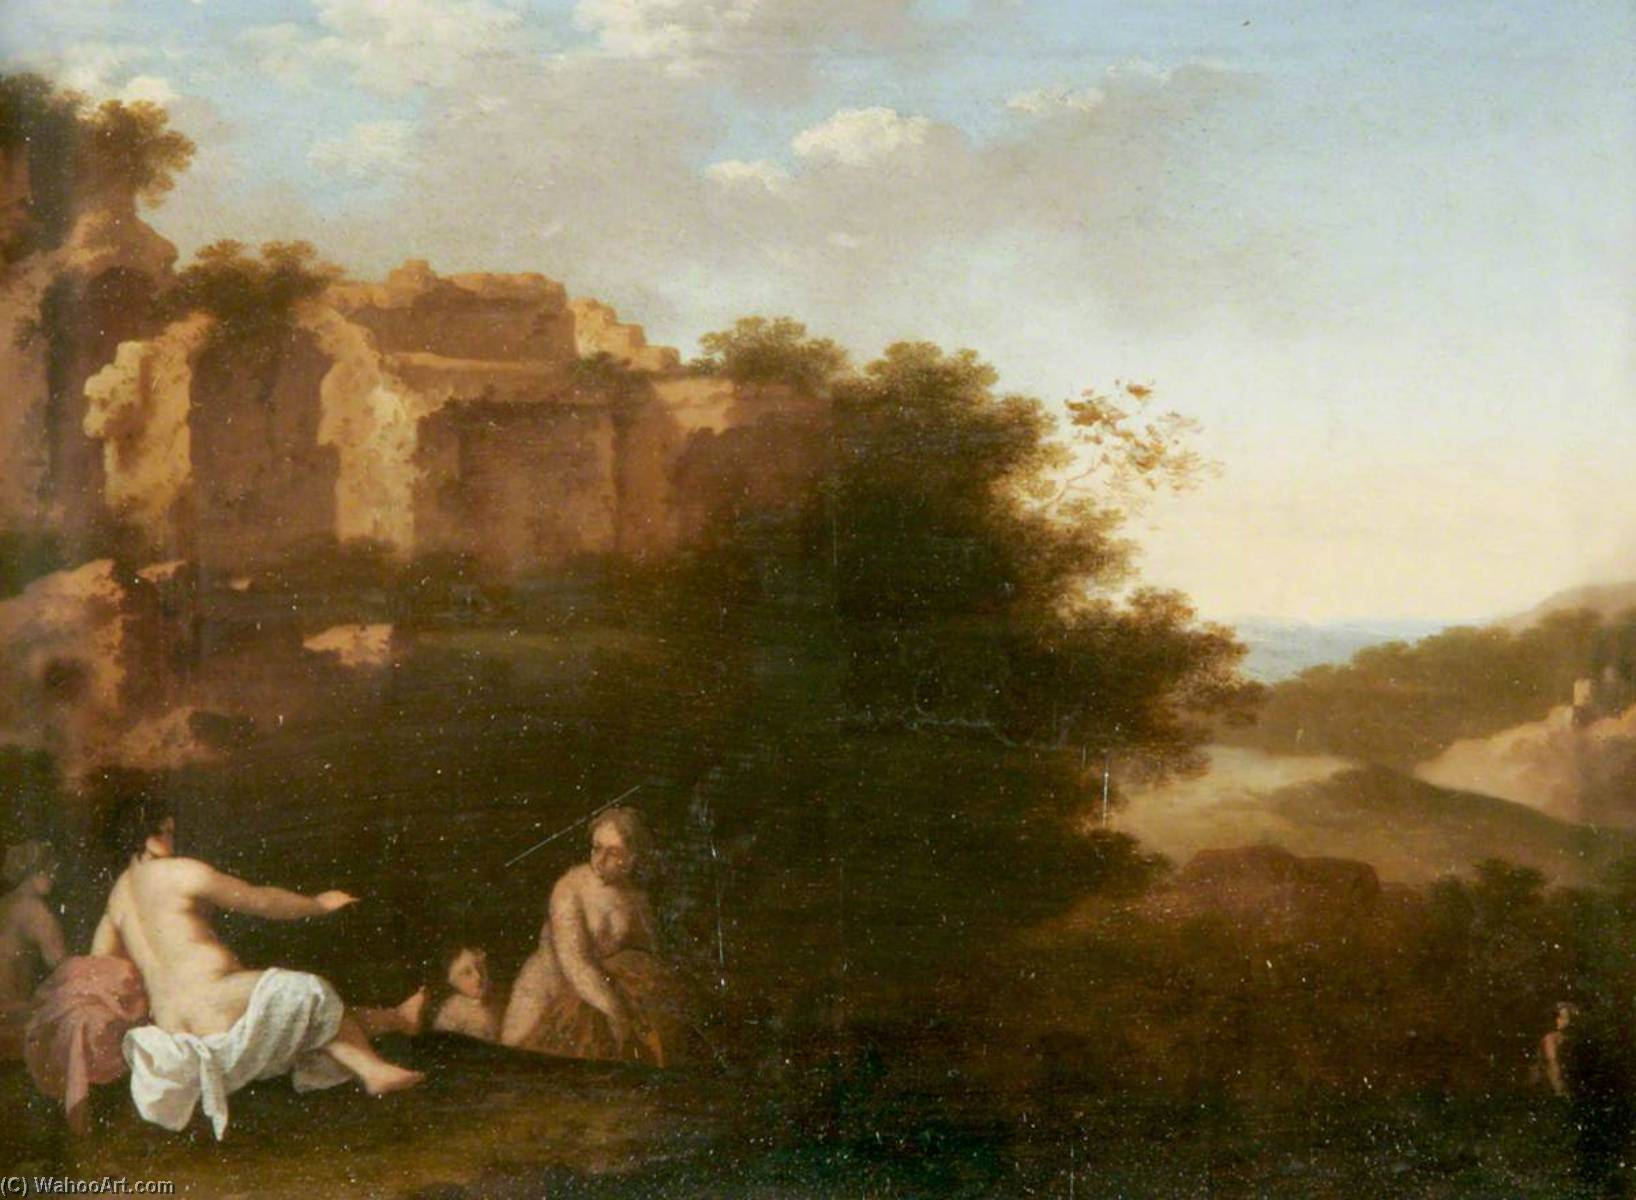 Nymphs Bathing in a Southern Landscape, Oil On Panel by Cornelis Van Poelenburgh (1595-1667, Netherlands)